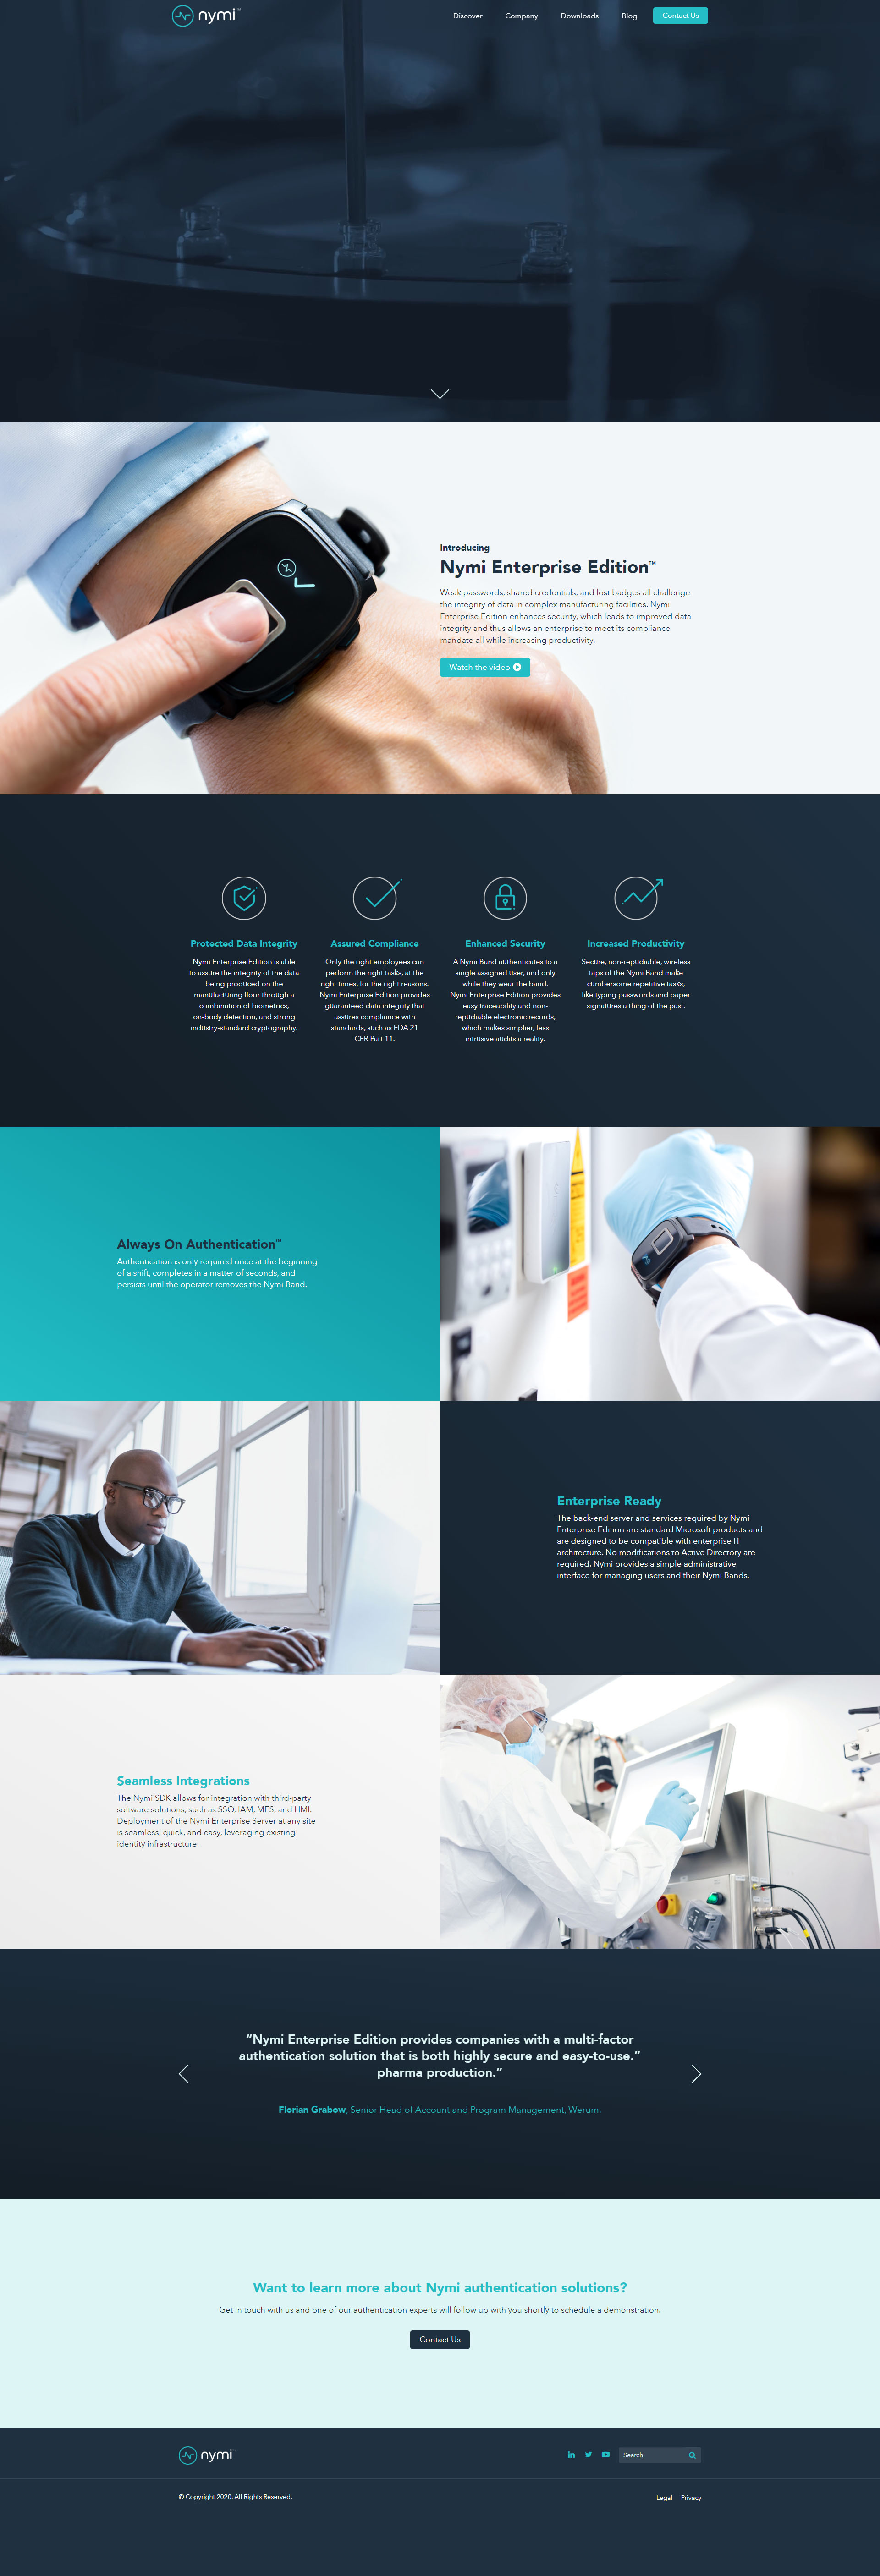 Previous Information Technology Website Design Example